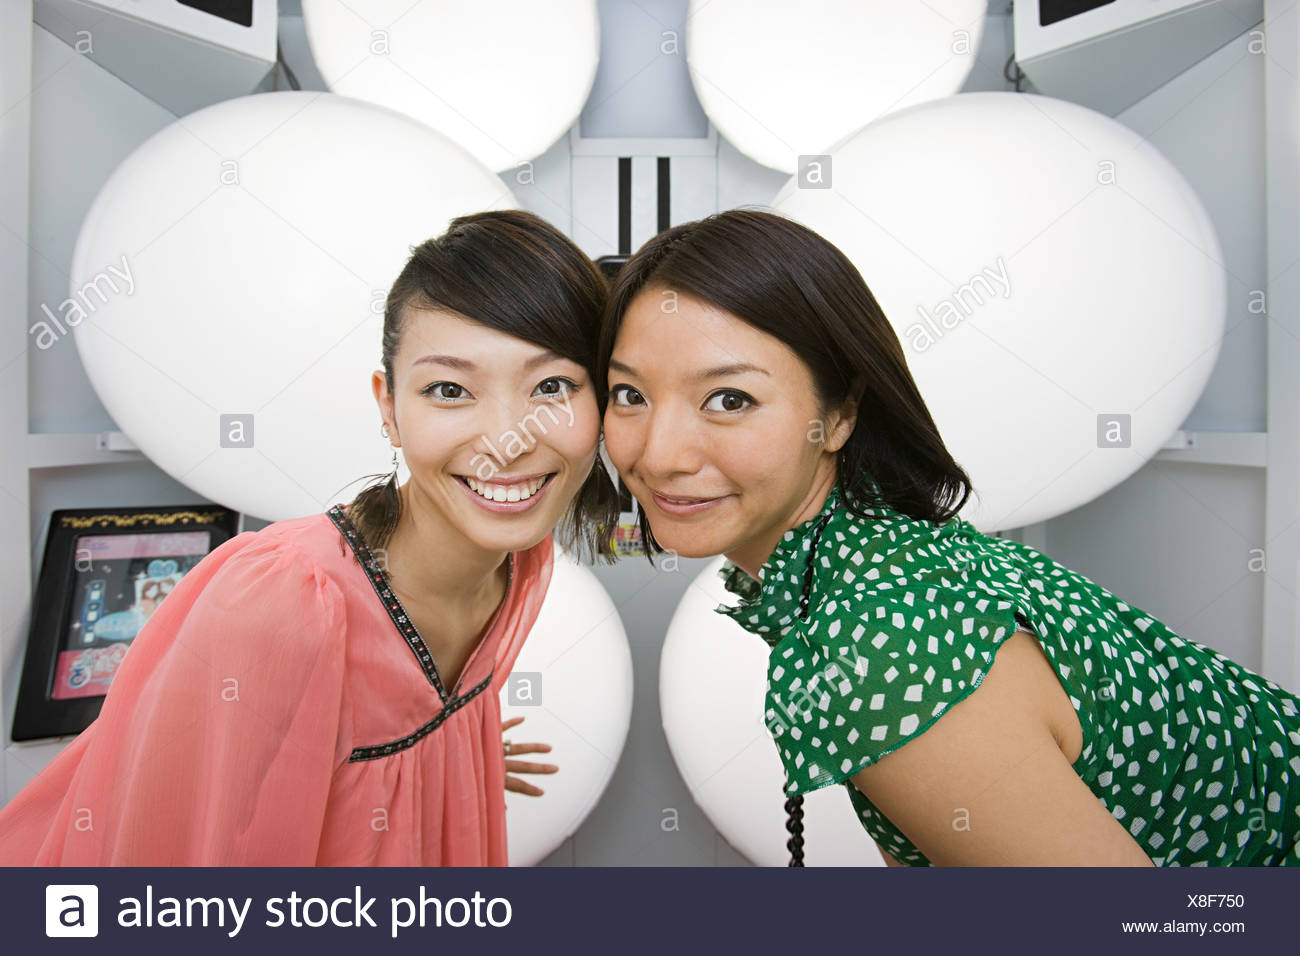 Friends in a photo booth - Stock Image